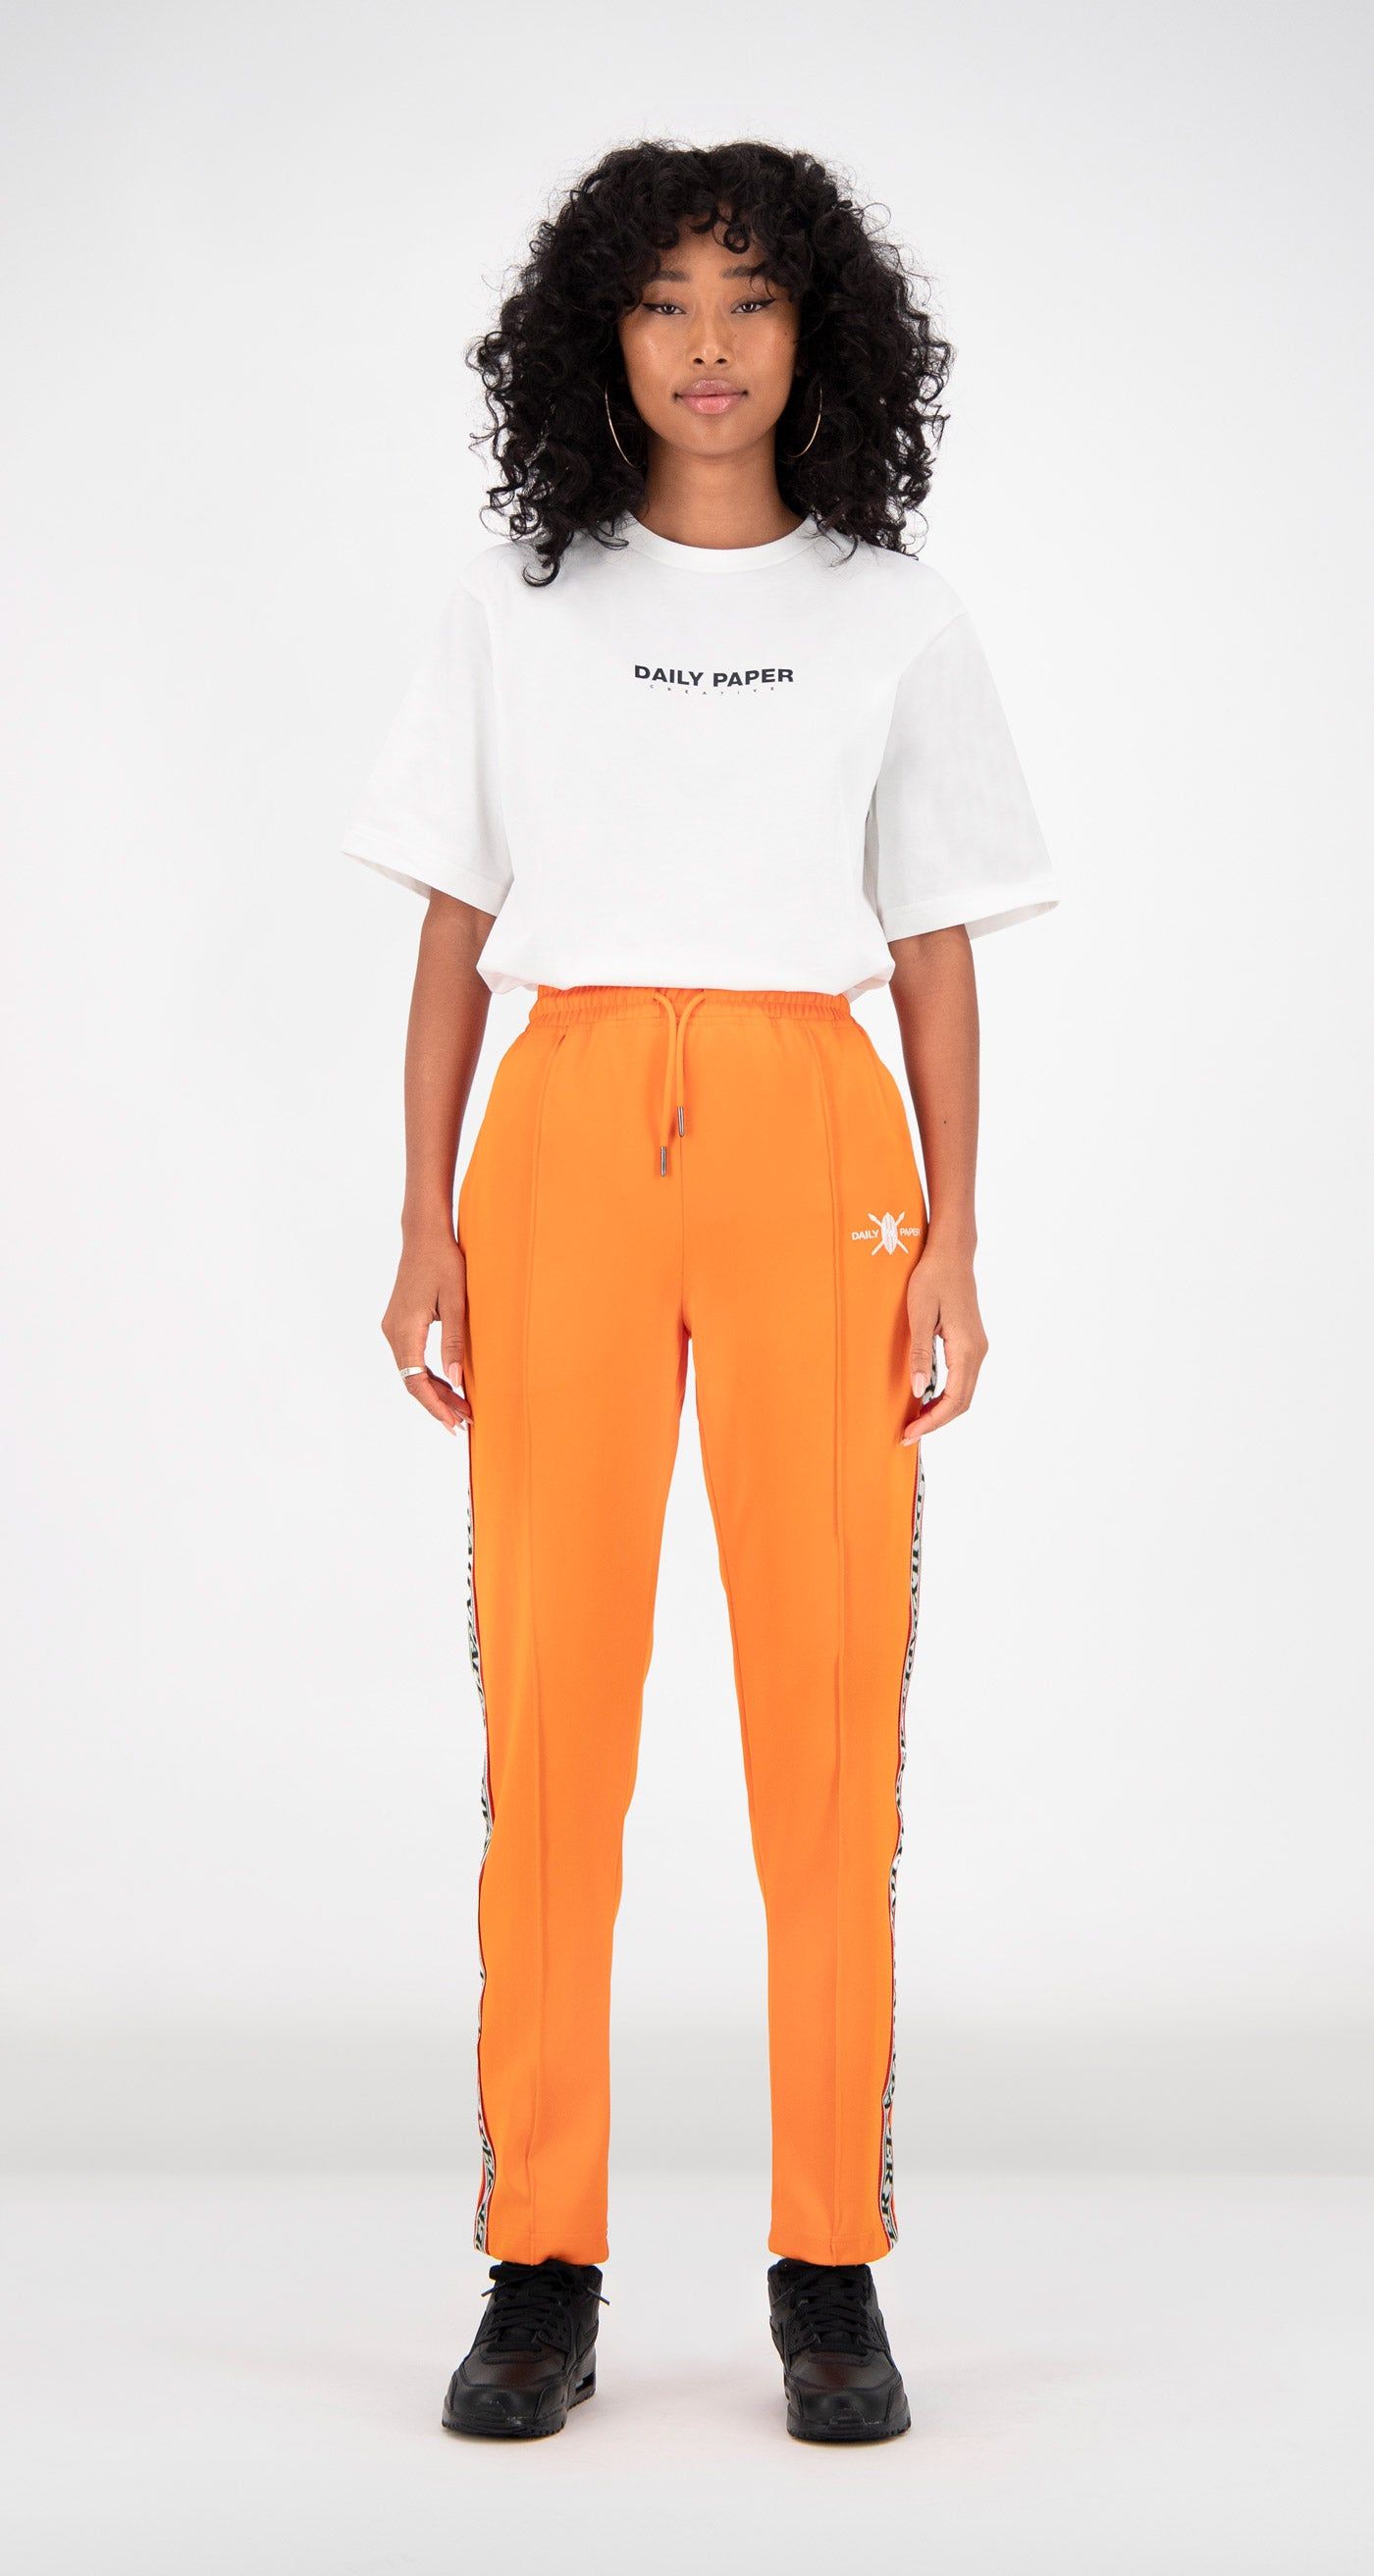 Daily Paper - Orange Liba Track Pants Women Front